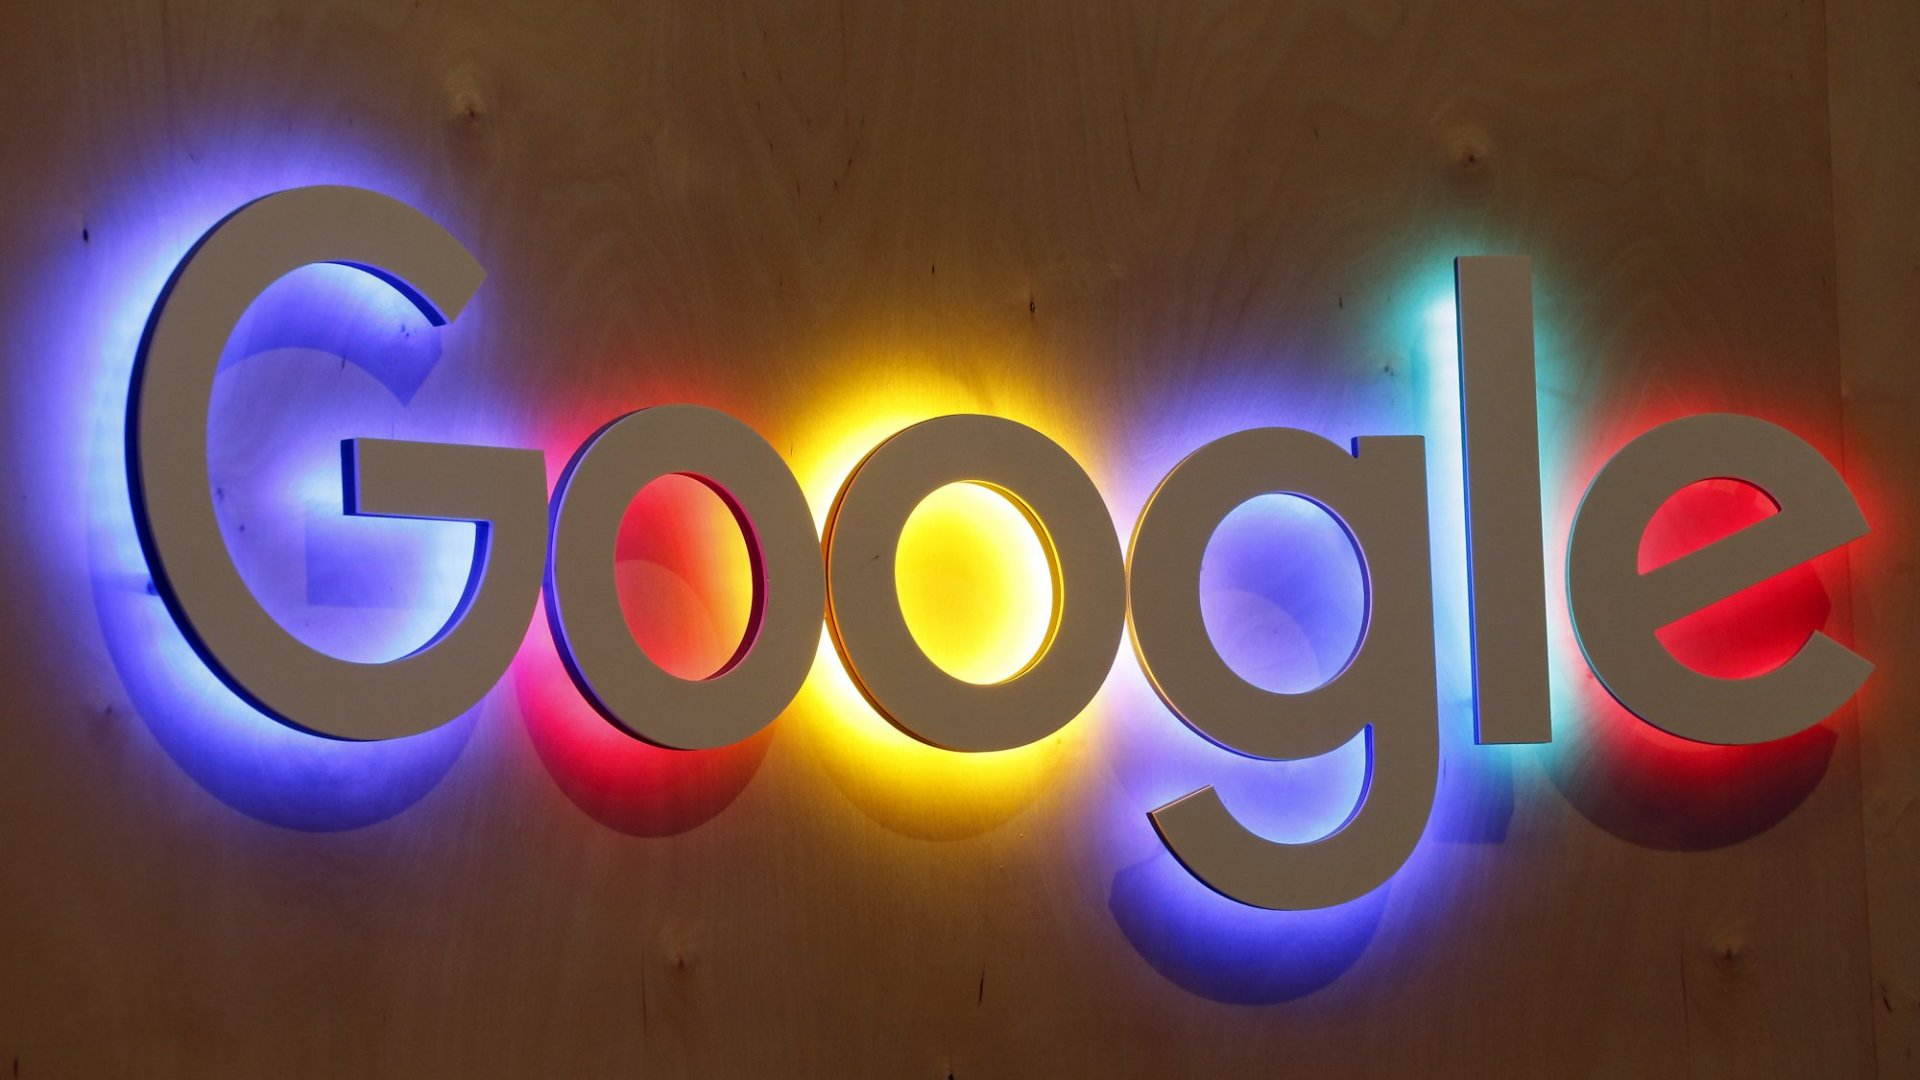 Google's Top-Notch Culture Boils Down to These 3 Principles, Says Former Google Executive